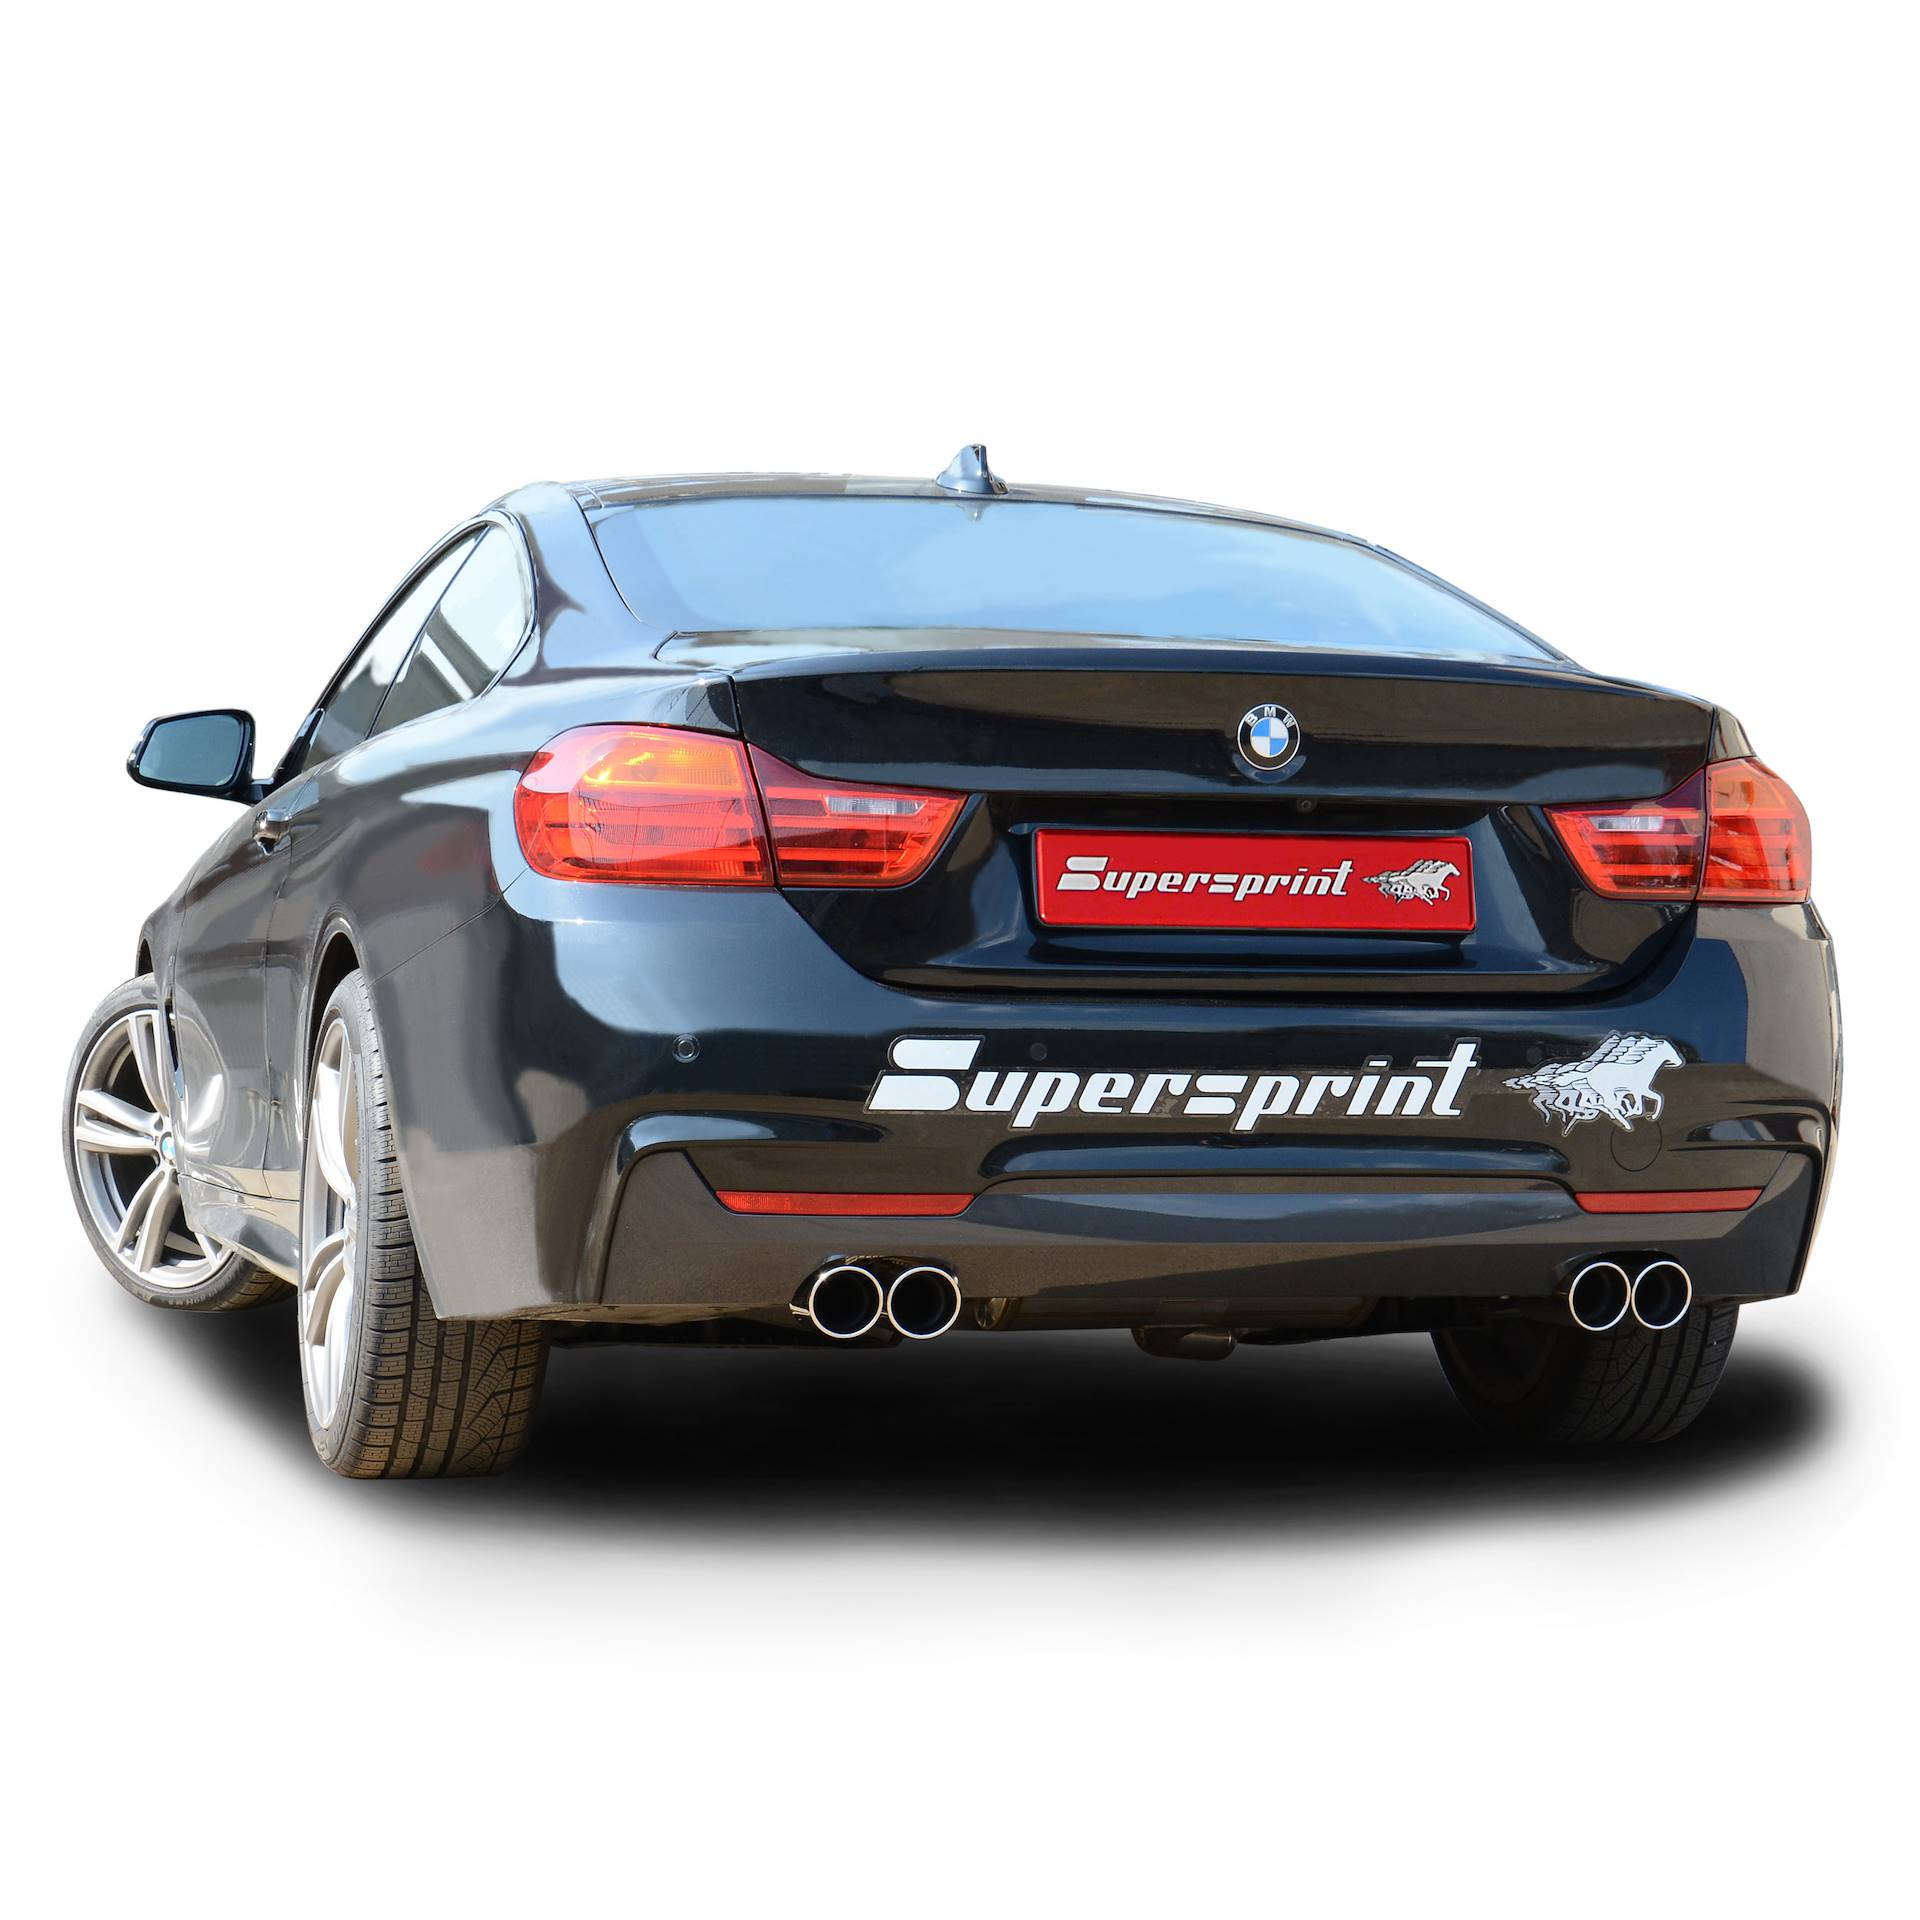 BMW - BMW F32 Coupè 428i 2.0T (N26 245 Hp) 2013 ->